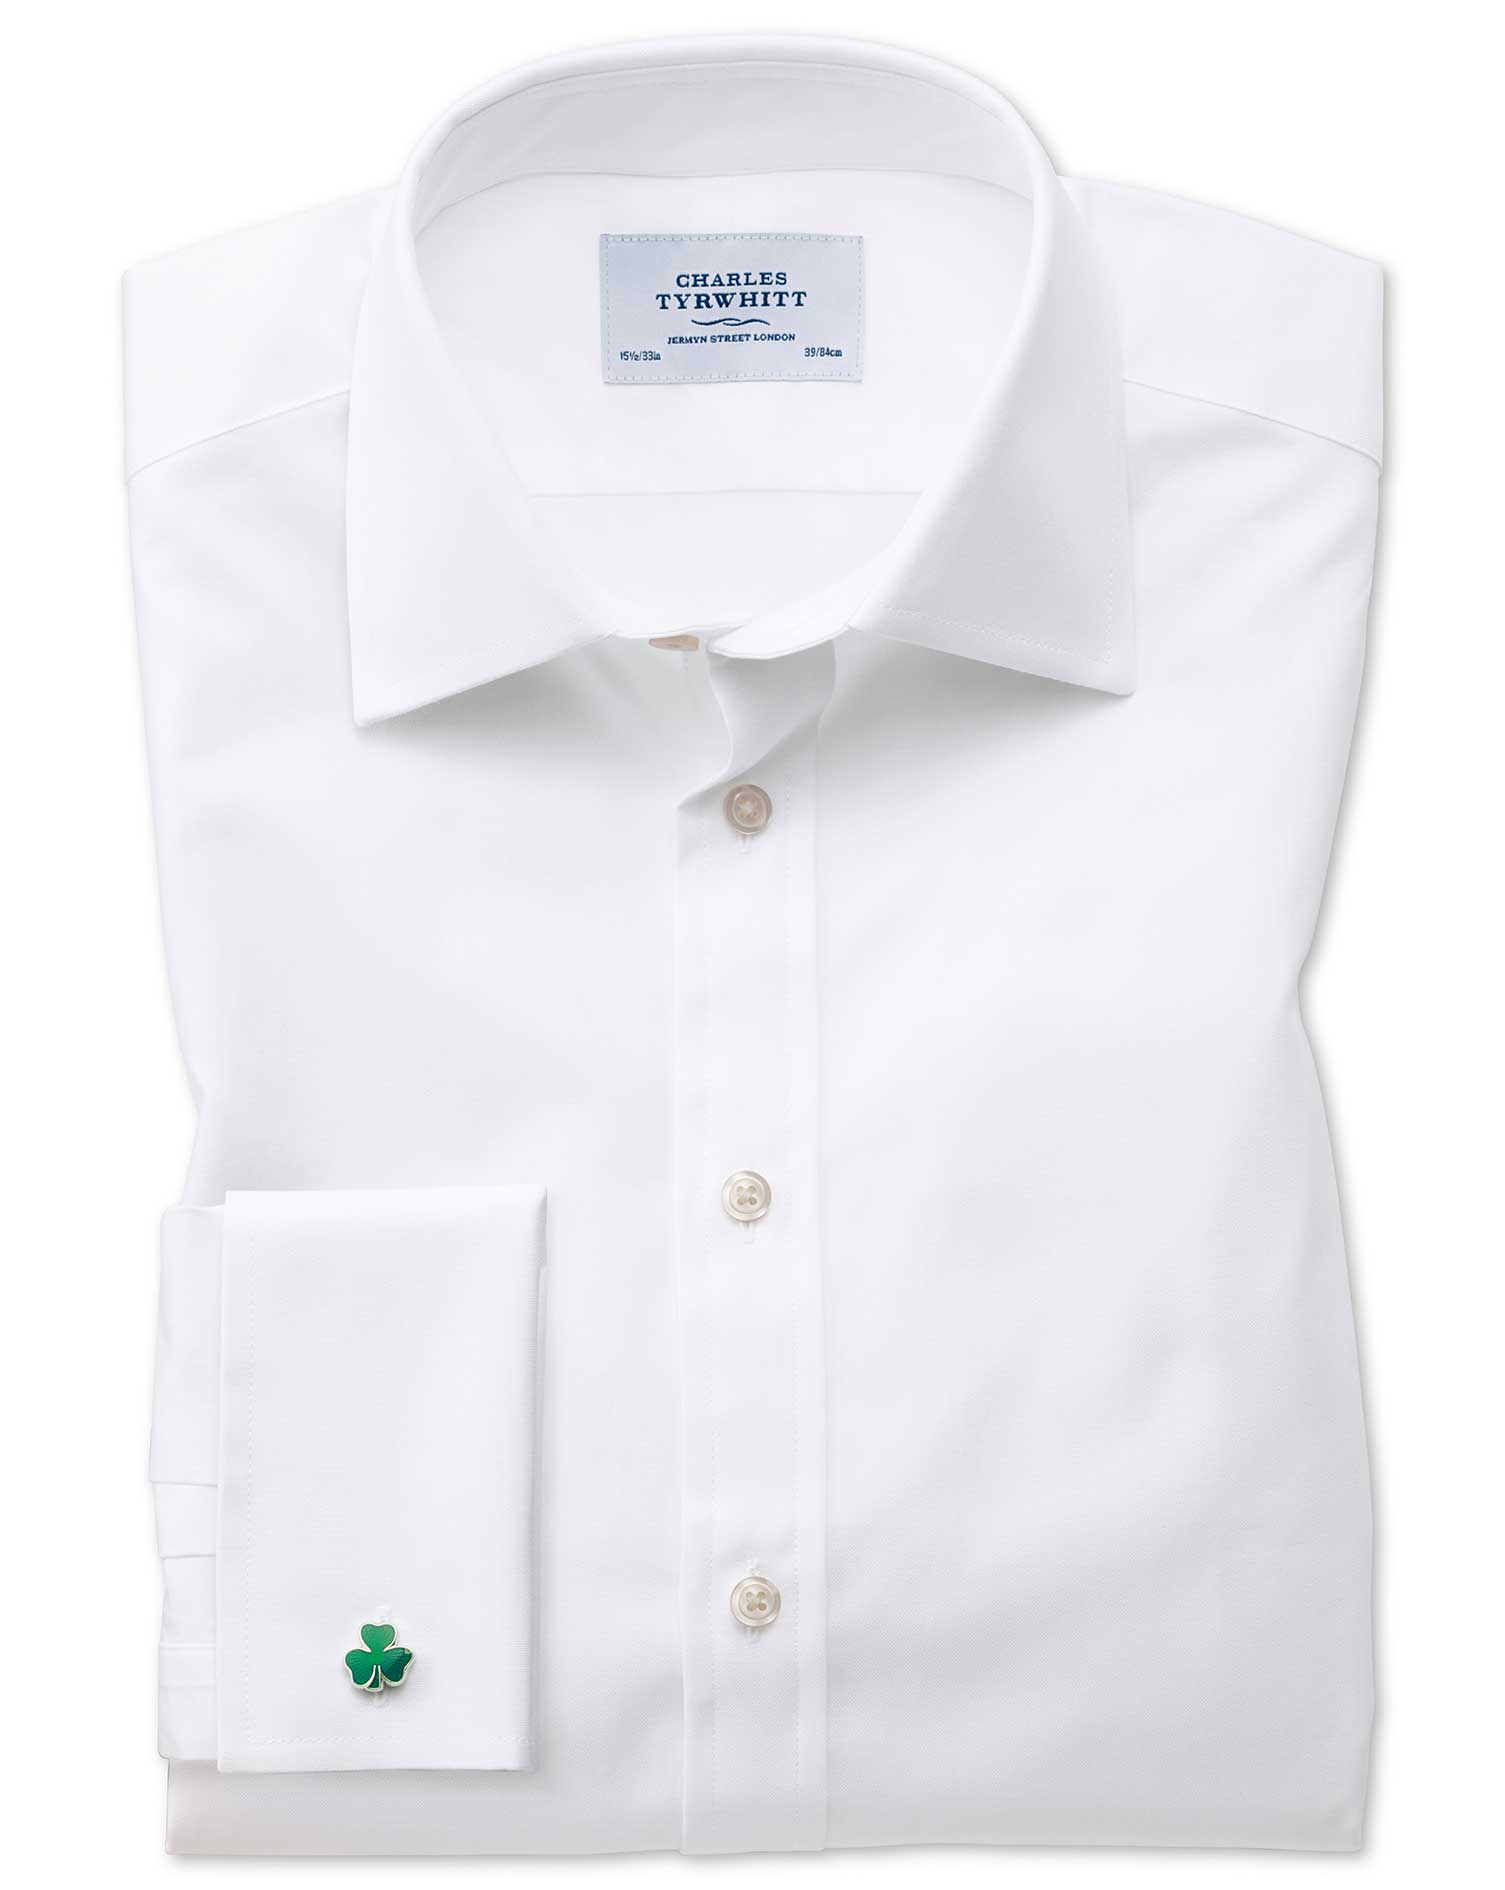 Classic Fit Oxford White Cotton Formal Shirt Double Cuff Size 16/38 by Charles Tyrwhitt